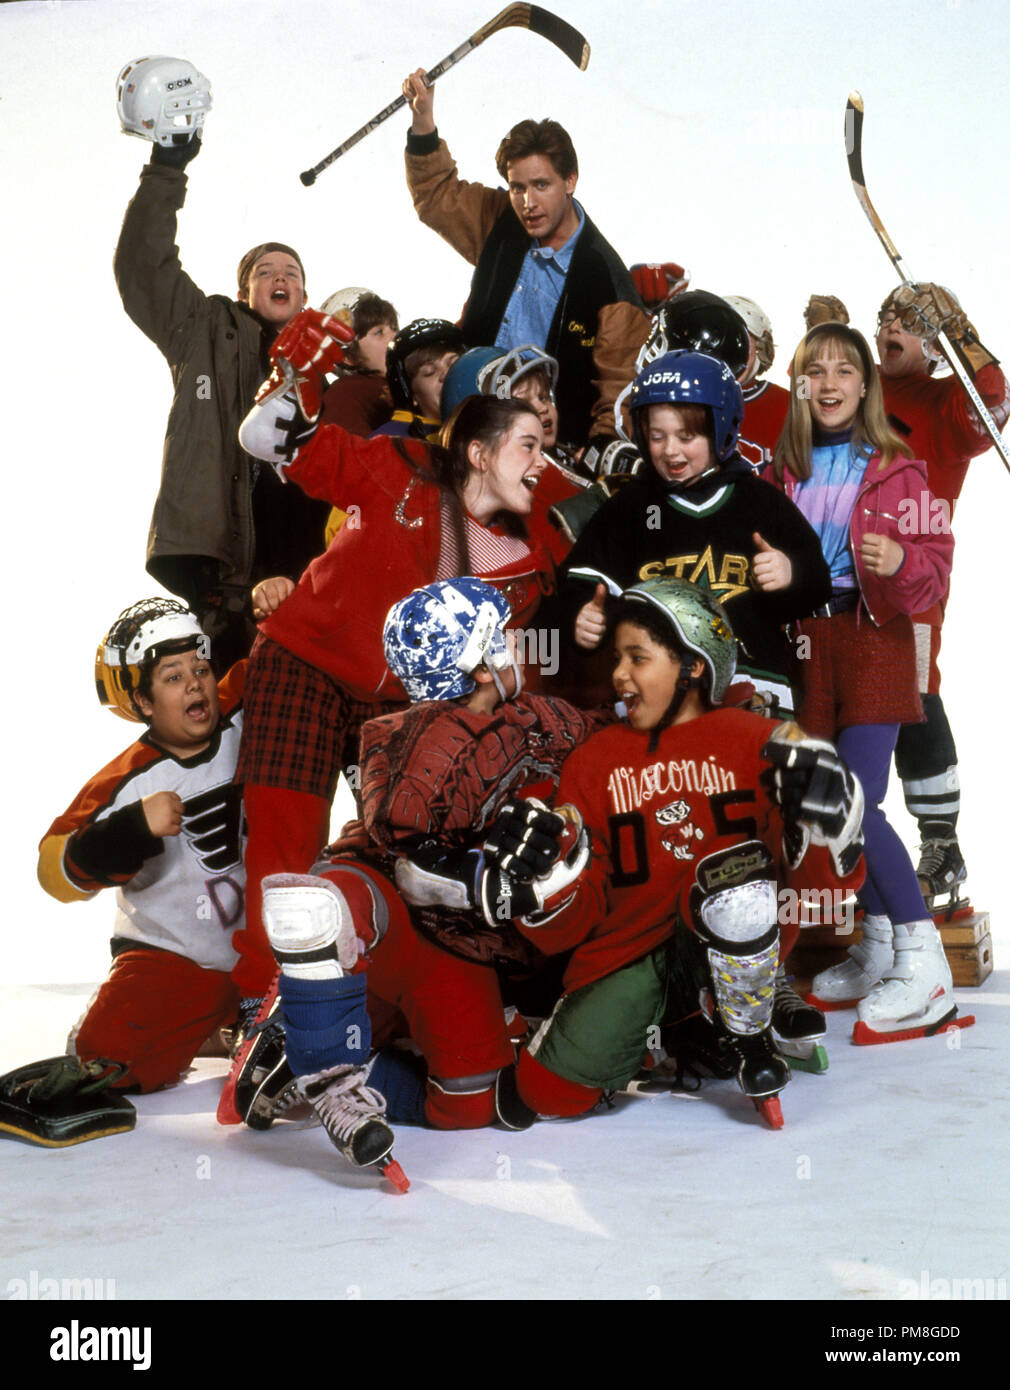 Film still or Publicity still from 'The Mighty Ducks' Emilio Estevez and the Ducks © 1992 Walt Disney Pictures Photo Credit: Bonnie Schiffman  All Rights Reserved   File Reference # 31487_294THA  For Editorial Use Only - Stock Image